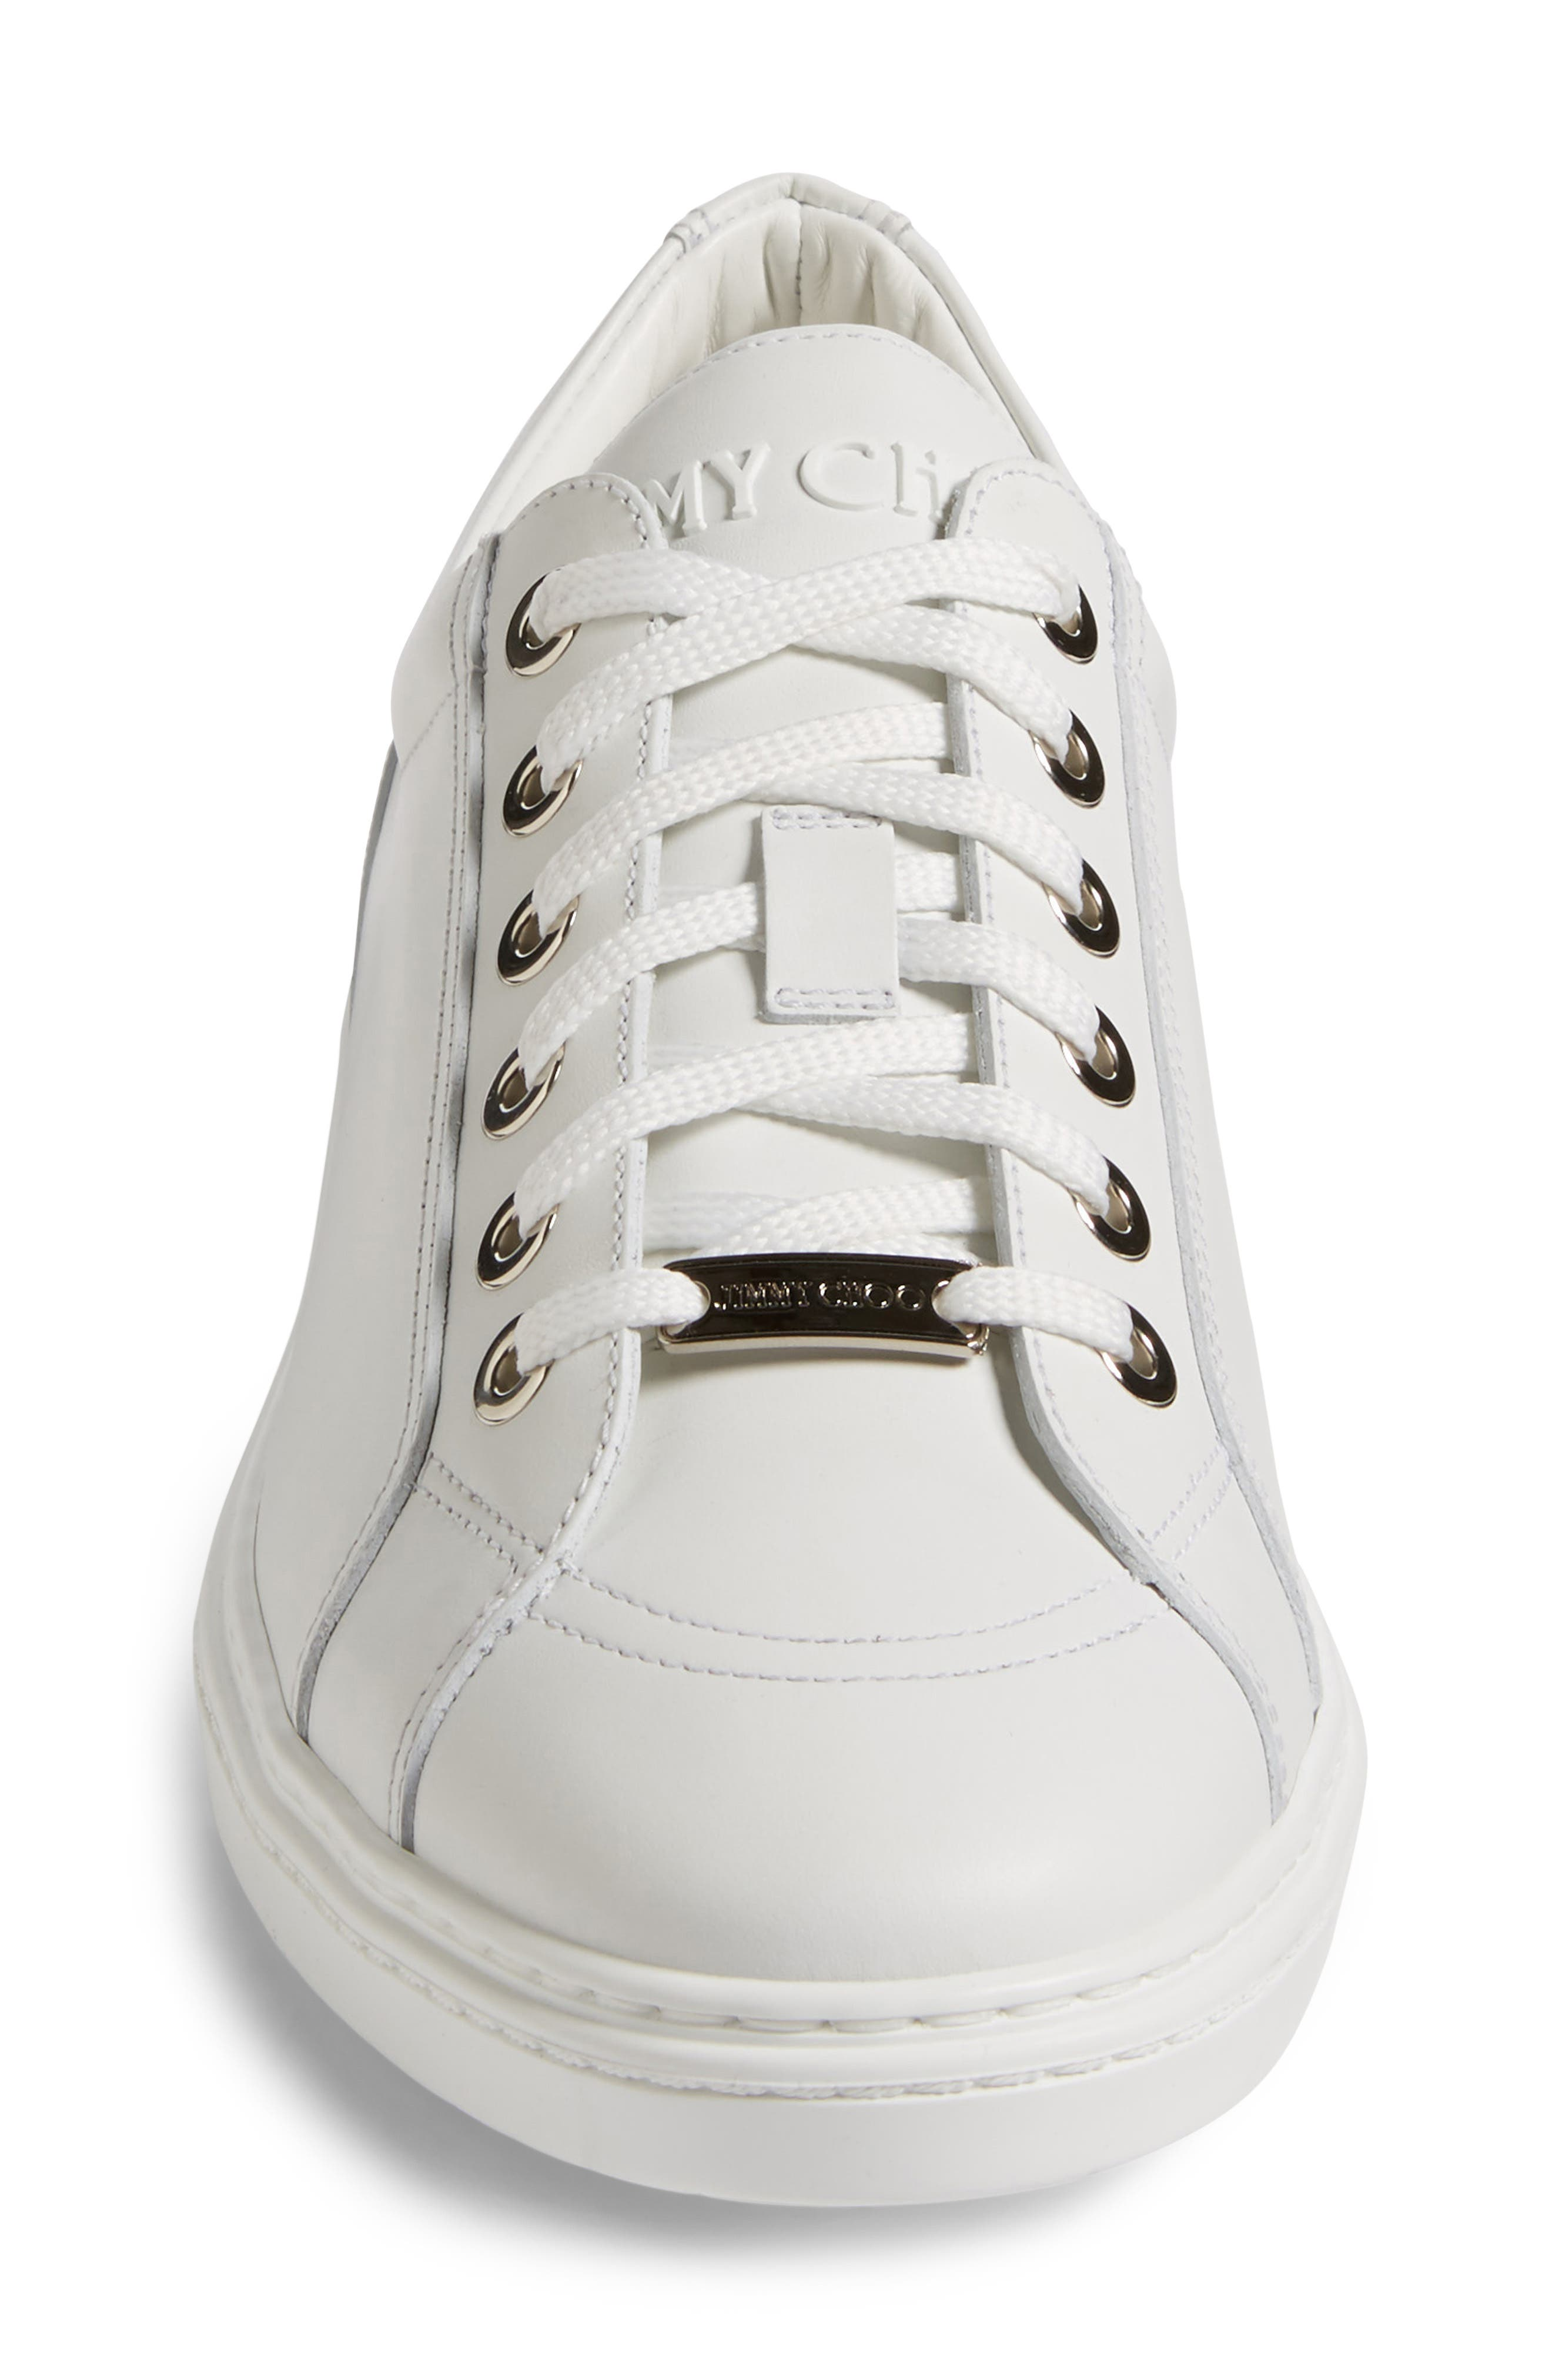 Cash Star Sneaker,                             Alternate thumbnail 4, color,                             Ultra White